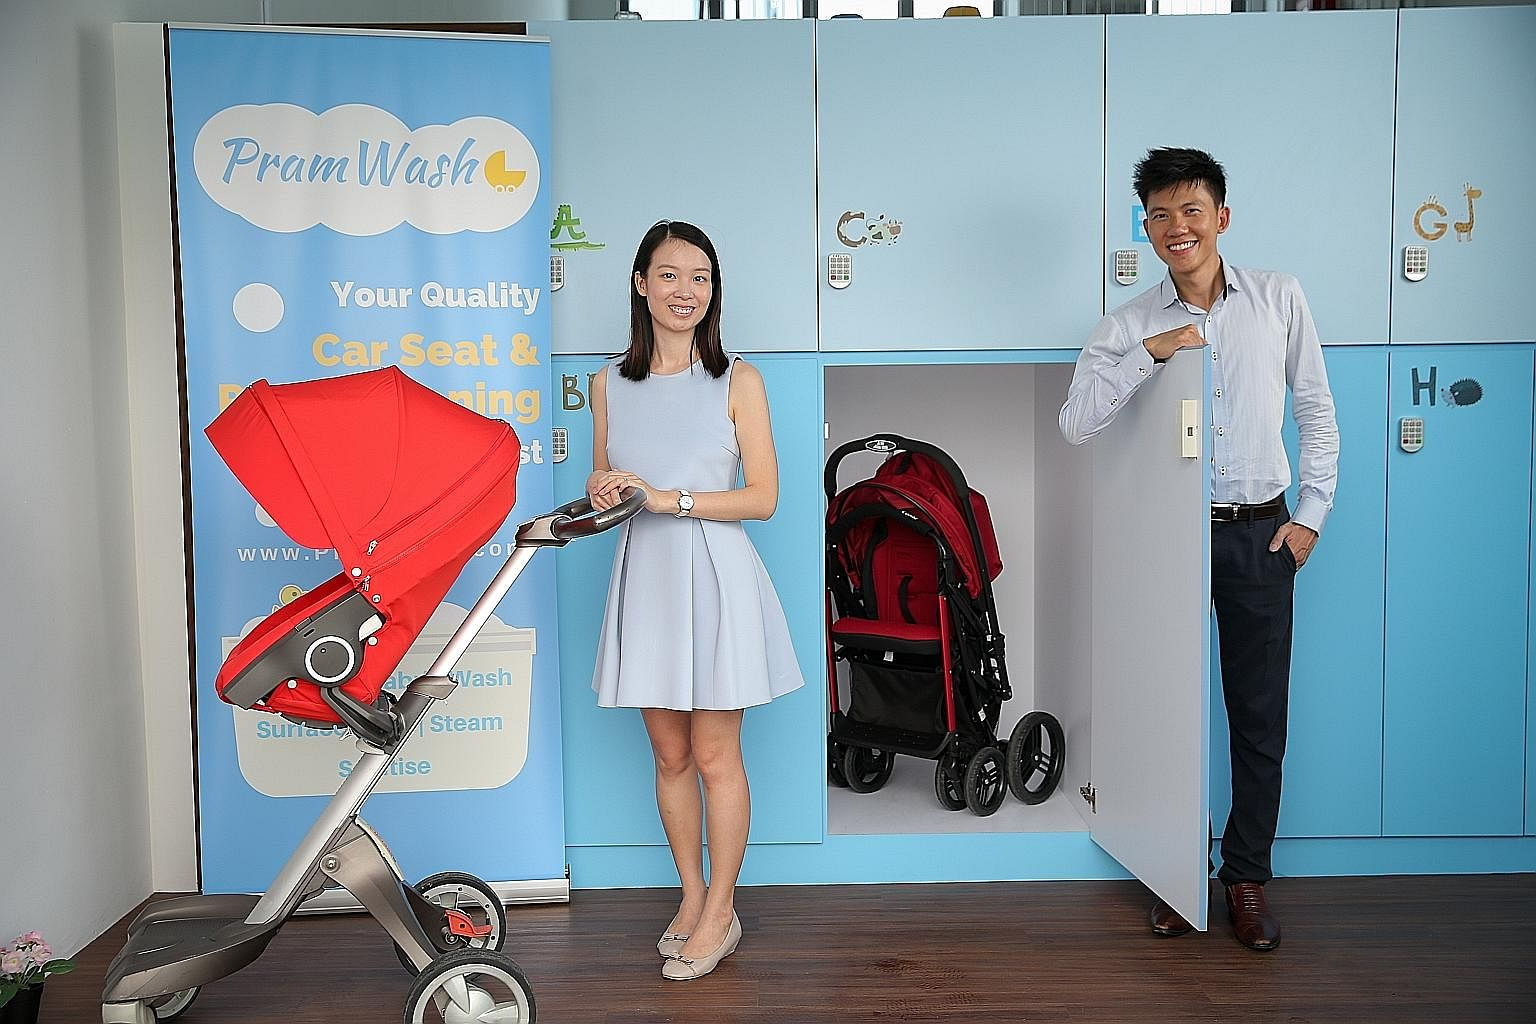 Thanks to baby, idea for pram service was born, Business News & Top Stories - The Straits Times